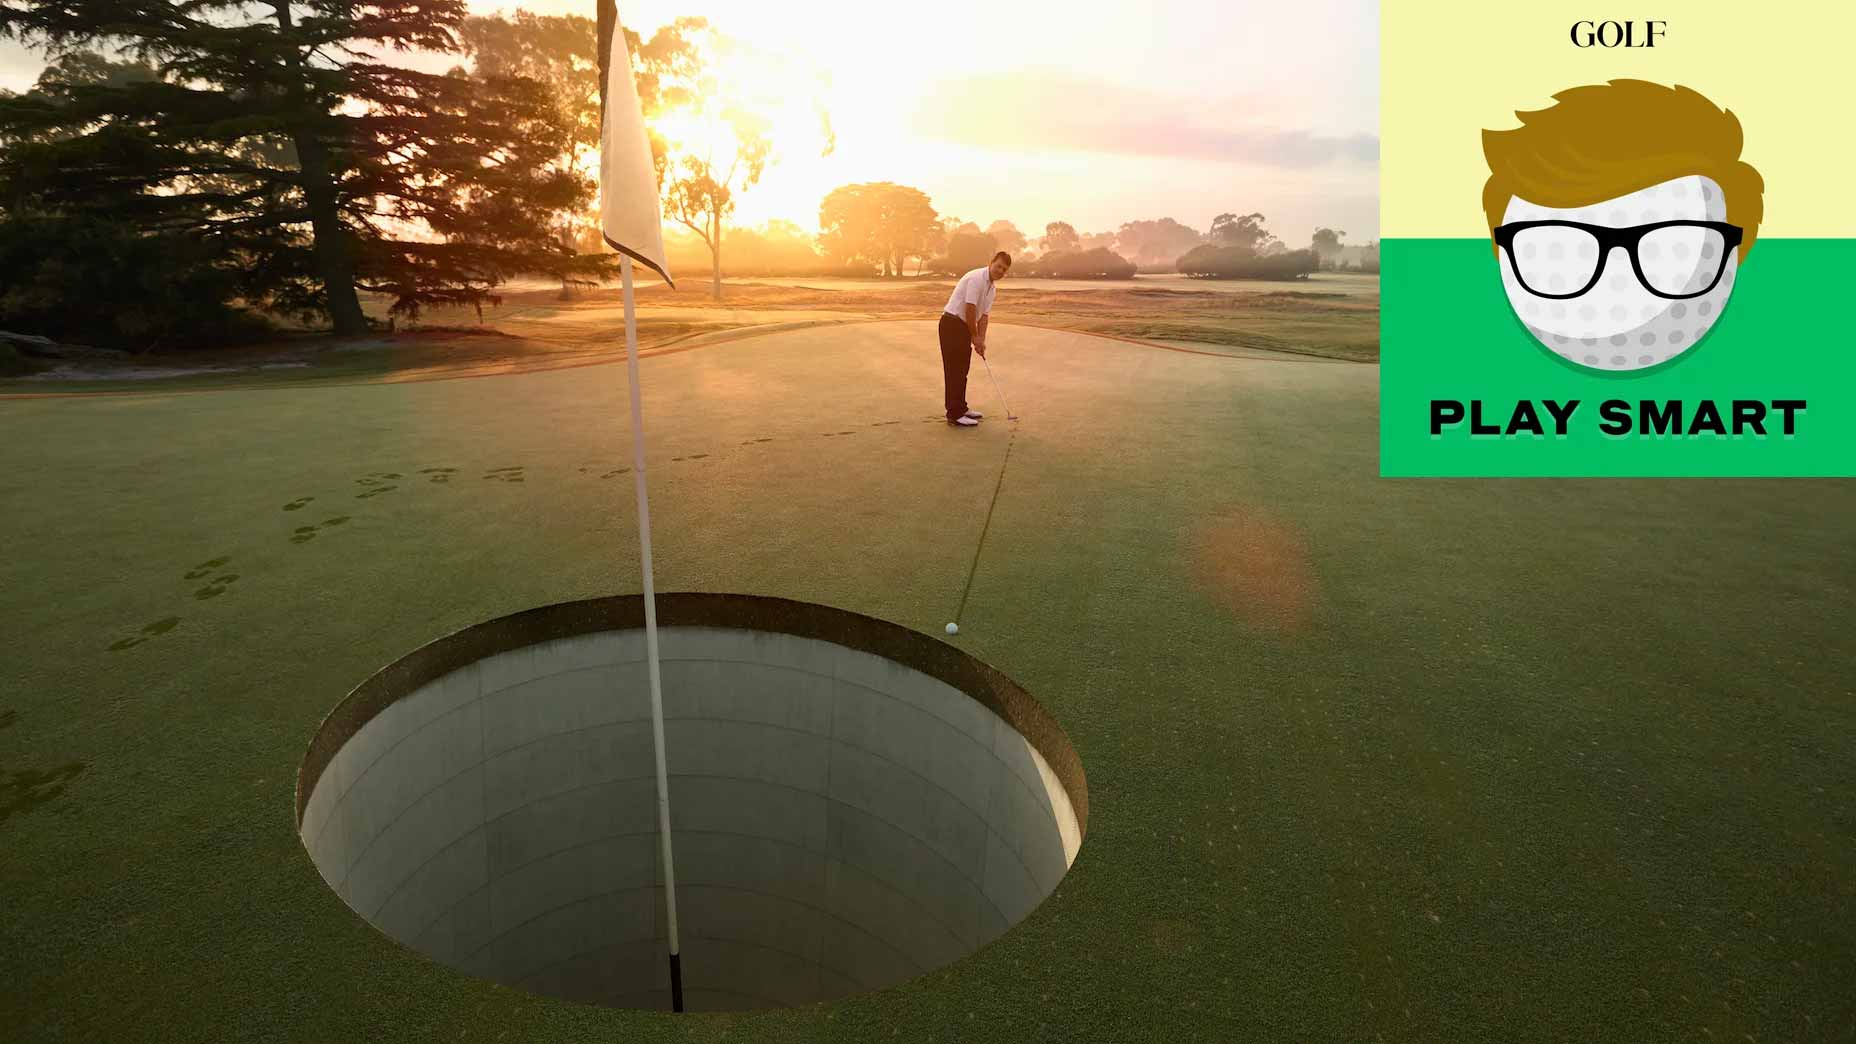 Golfer putting on golf course to giant hole